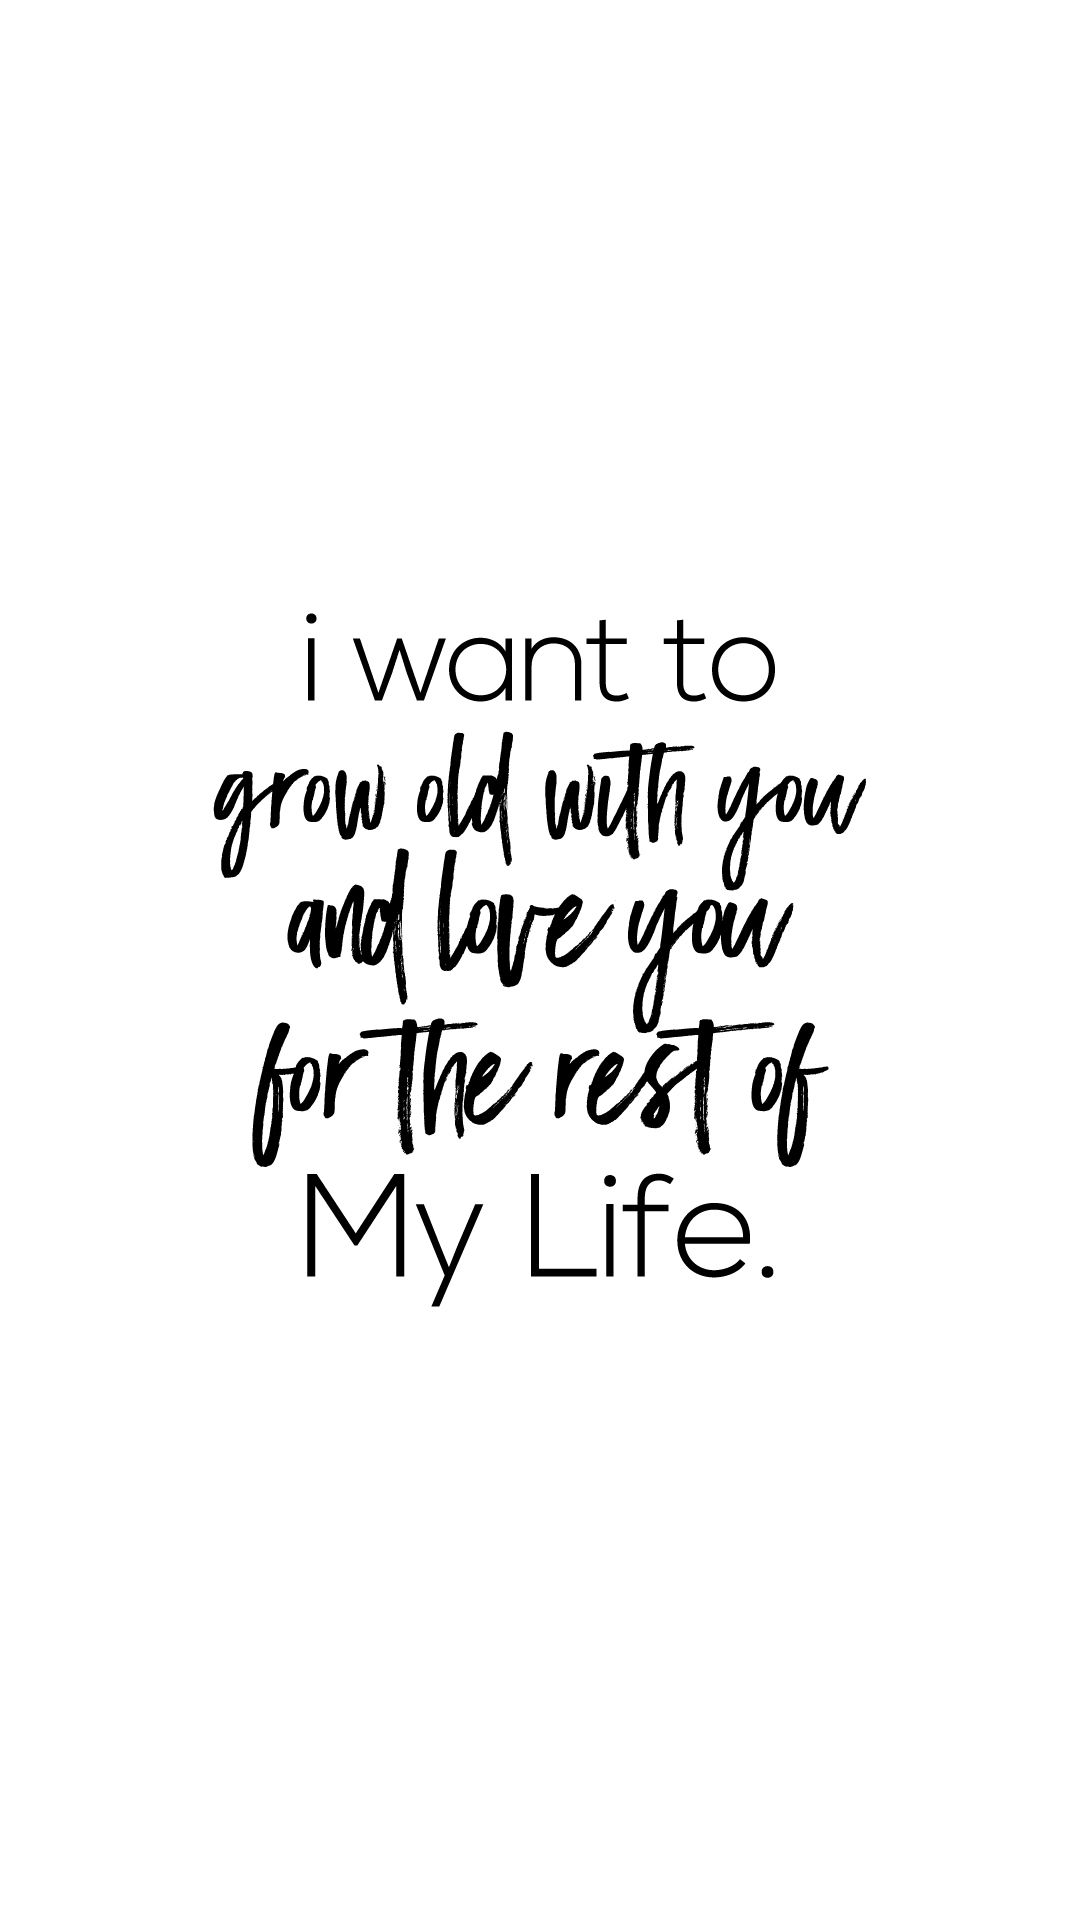 I Want To Grow Old With You And Love You For The Rest Of My Life Love Quote Love Life Quotes Printable Inspirational Quotes How To Make Quotes